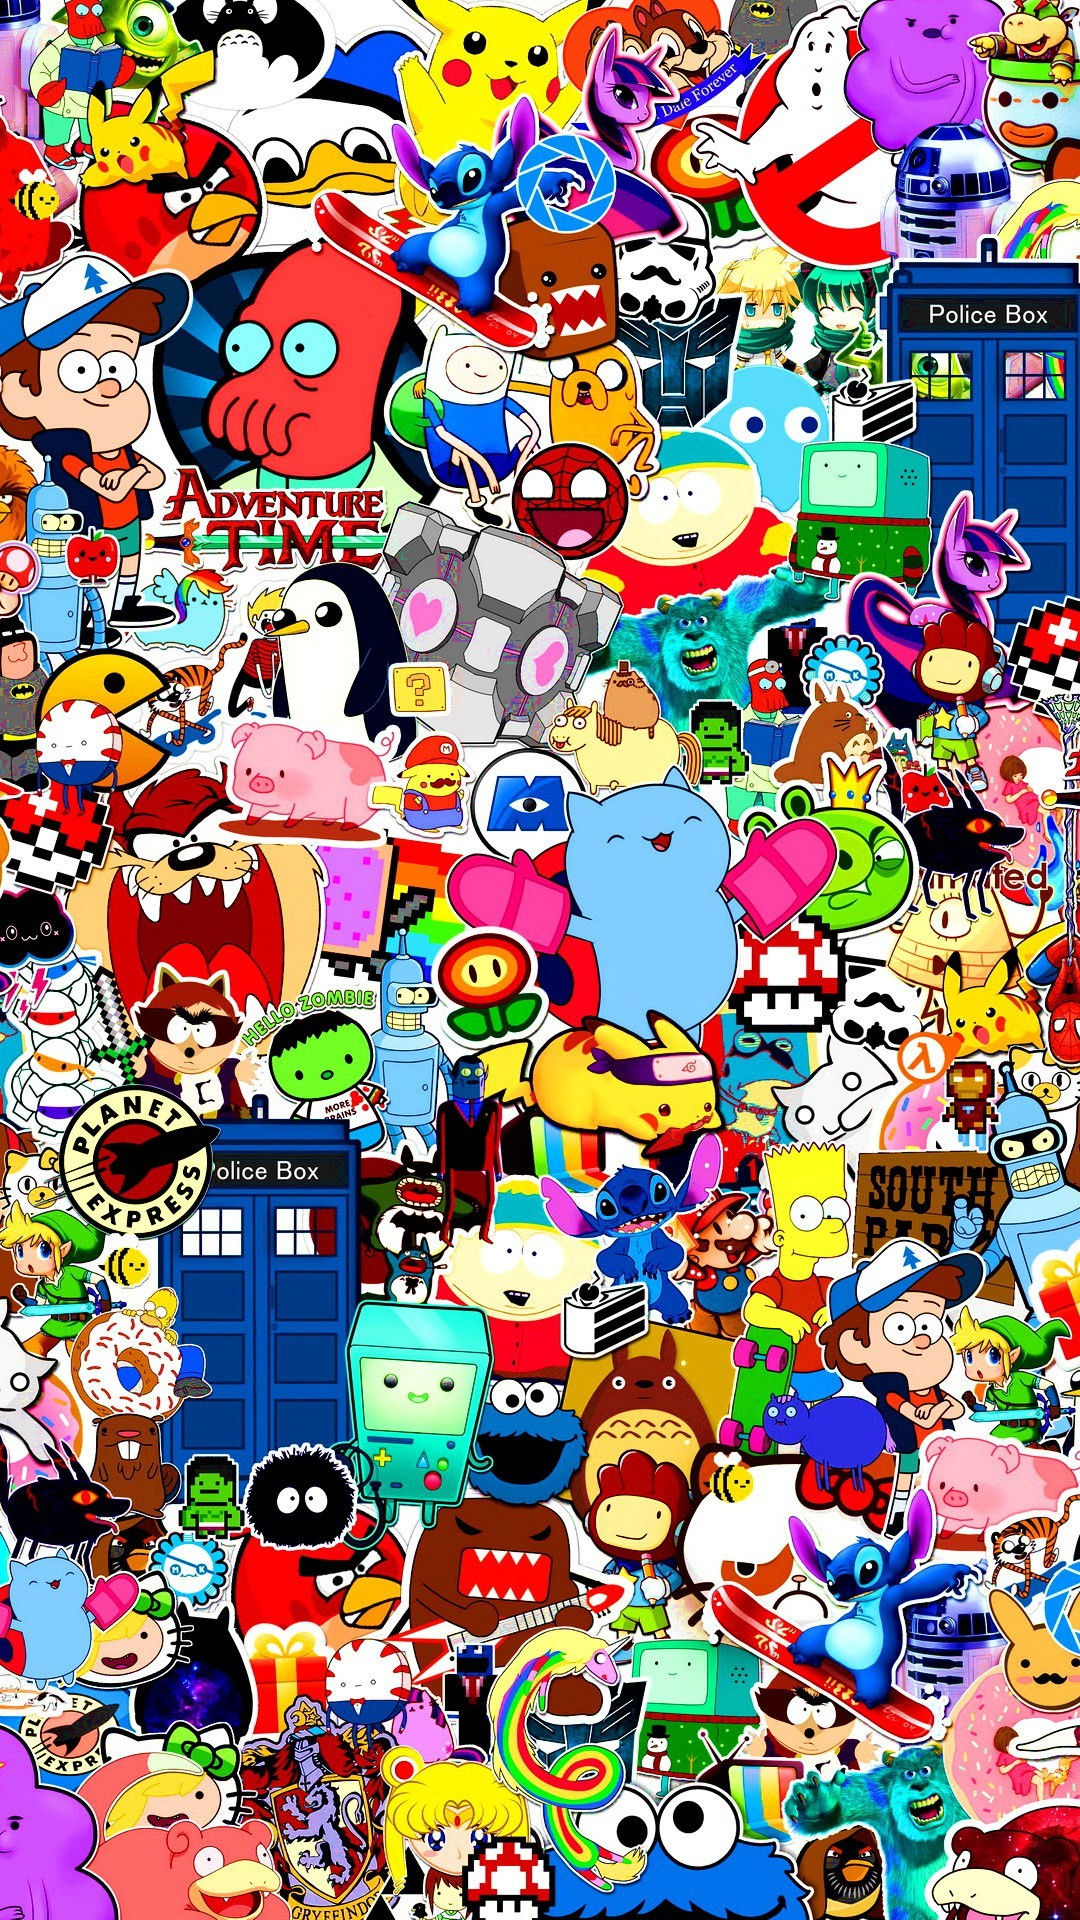 bfb928fe6fd 1080x1920 stickers - iPhone 6 Plus Retina Wallpapers